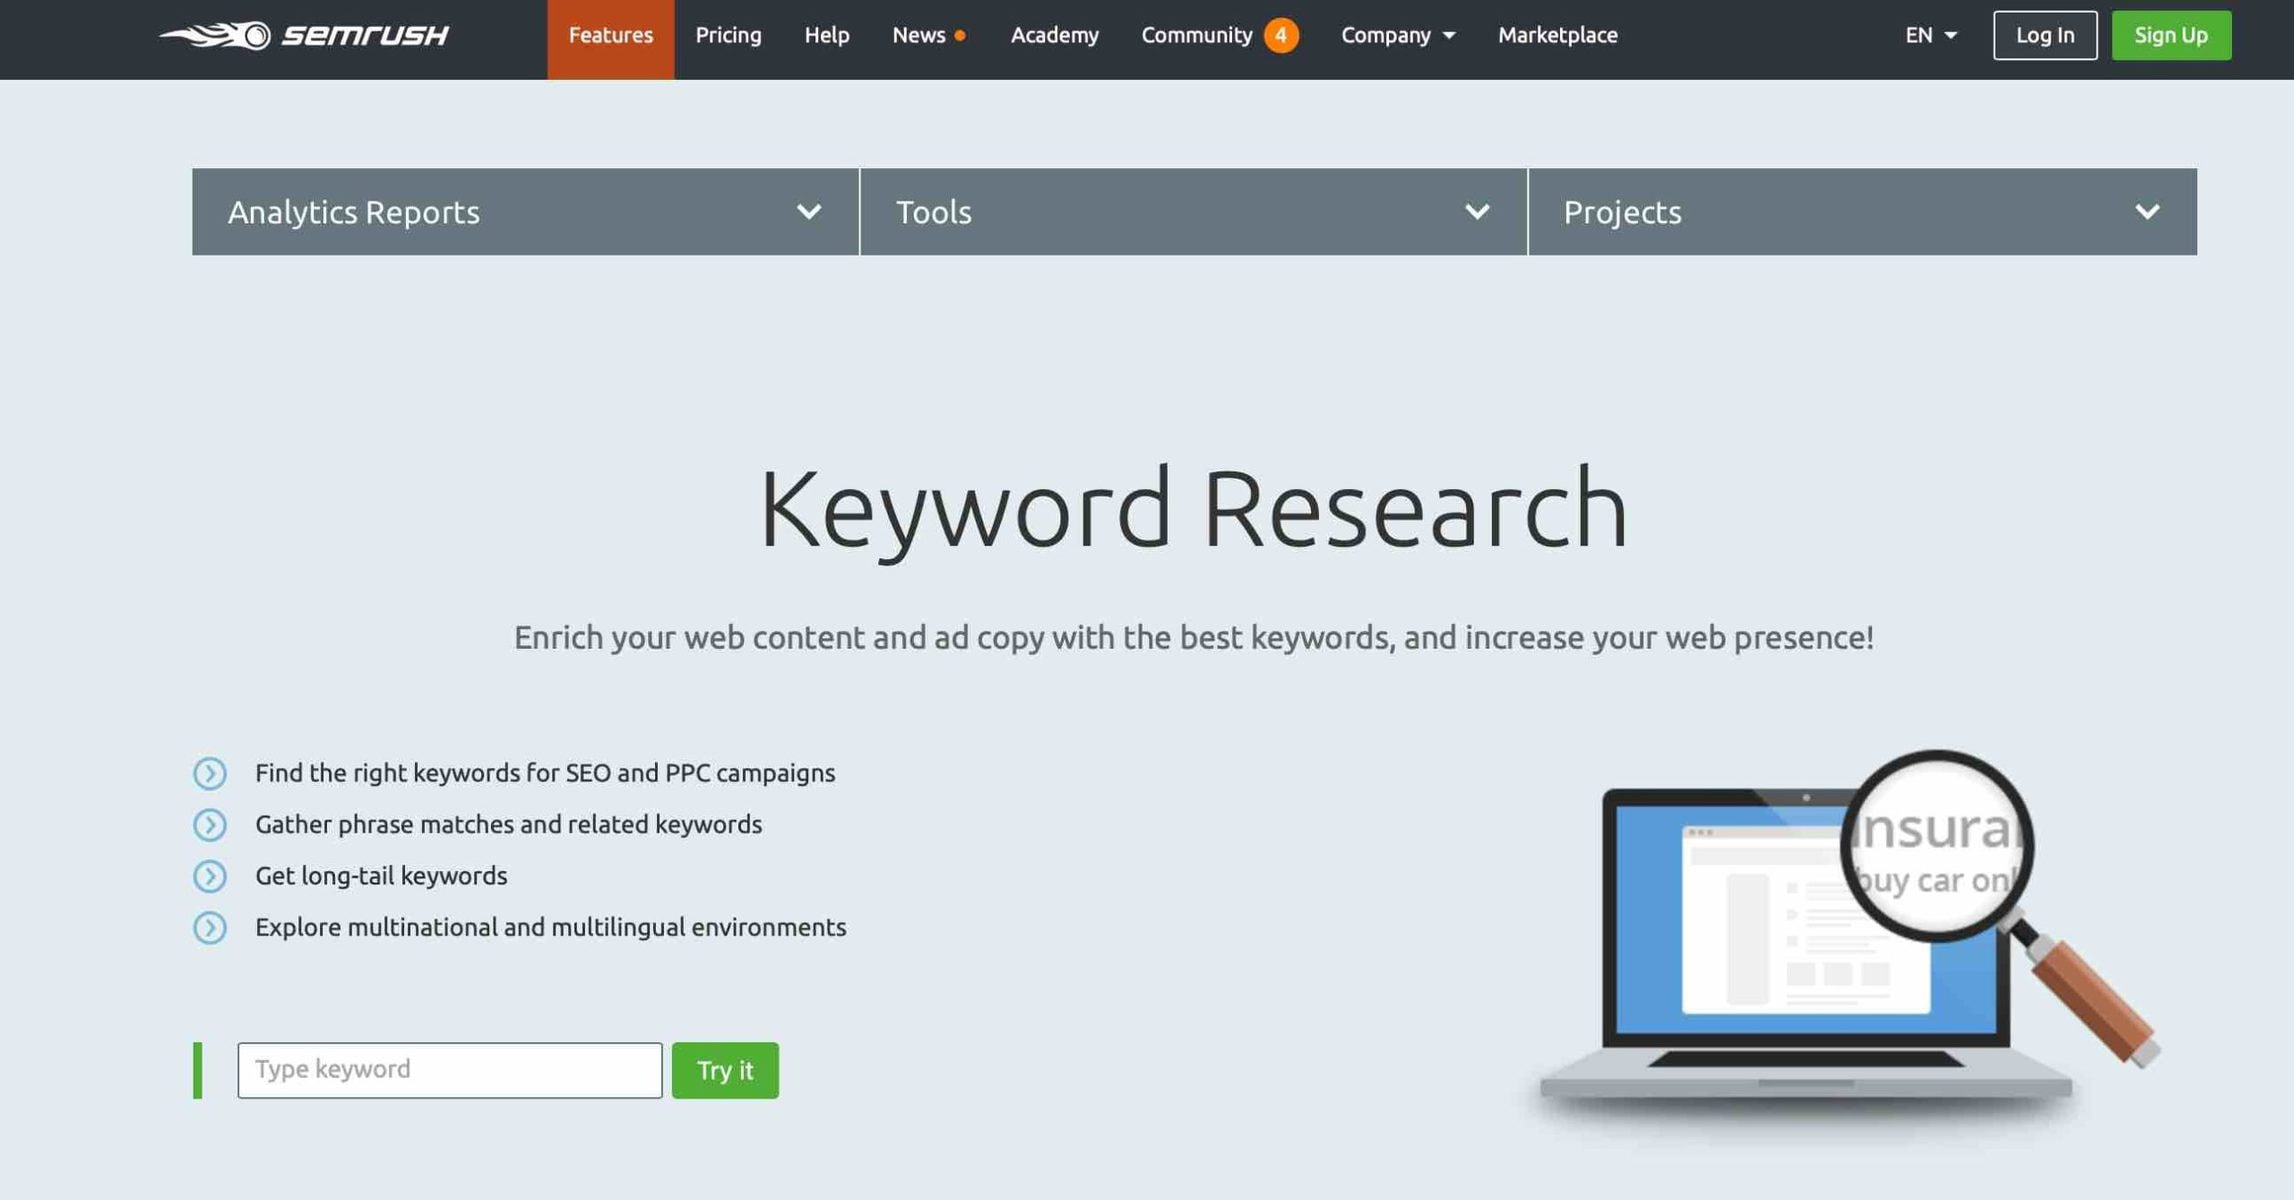 Find the right keywords for SEO